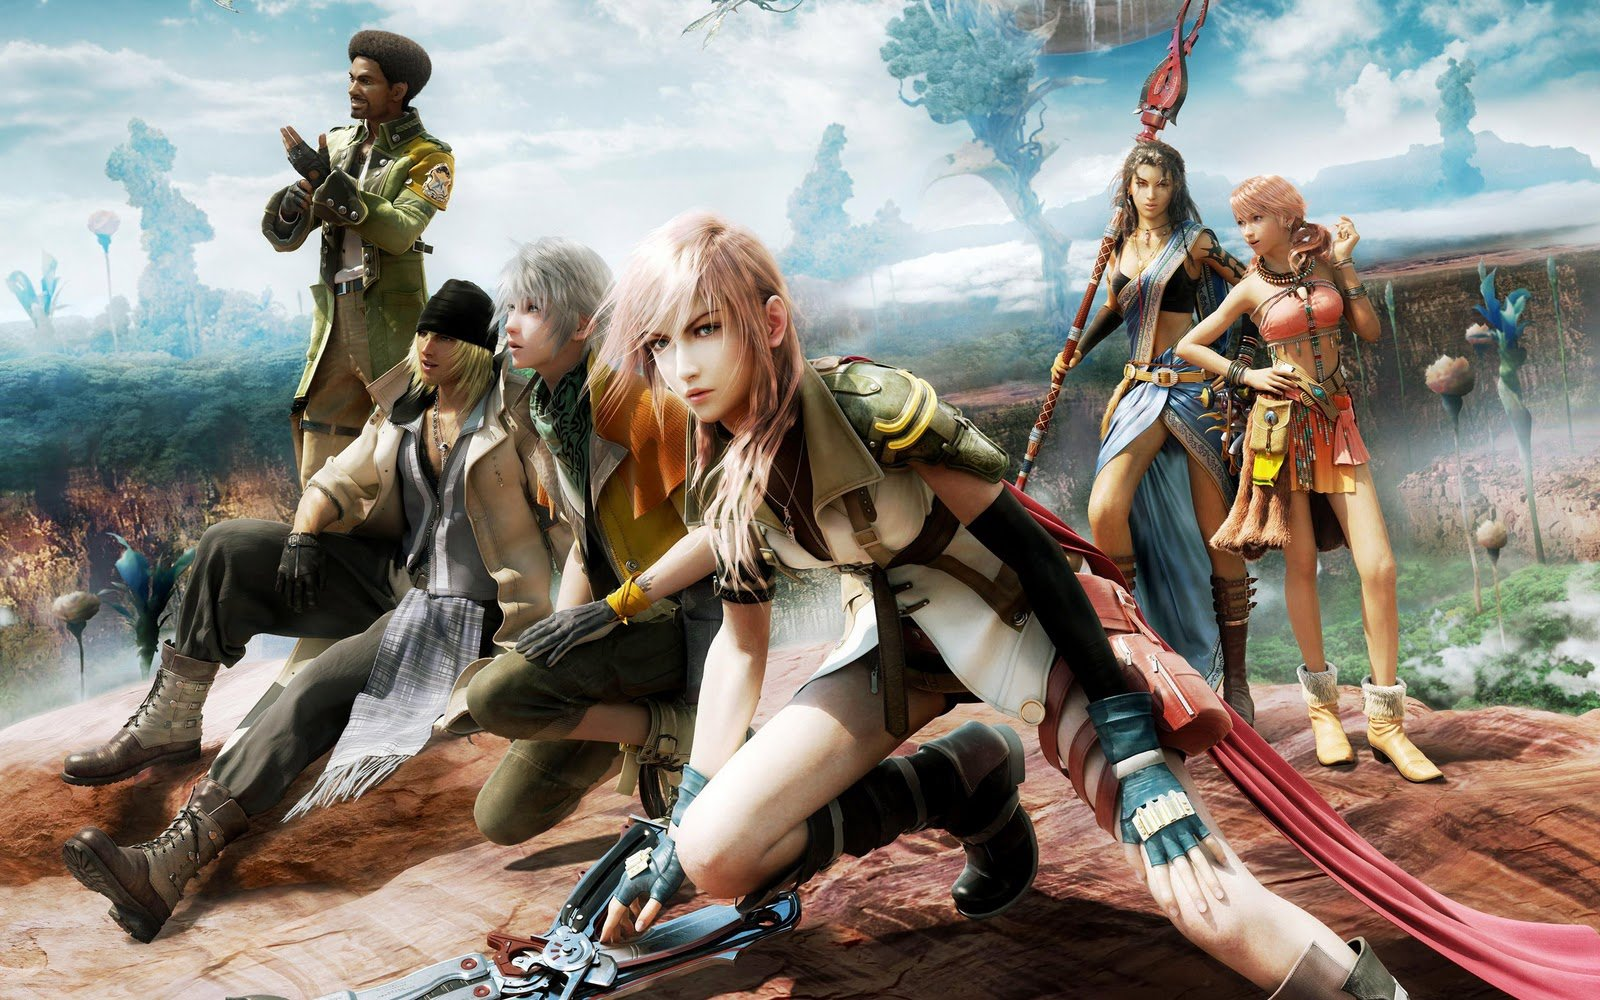 Final Fantasy XIII HD Wallpapers   2011 2013 GAMES 1600x1000